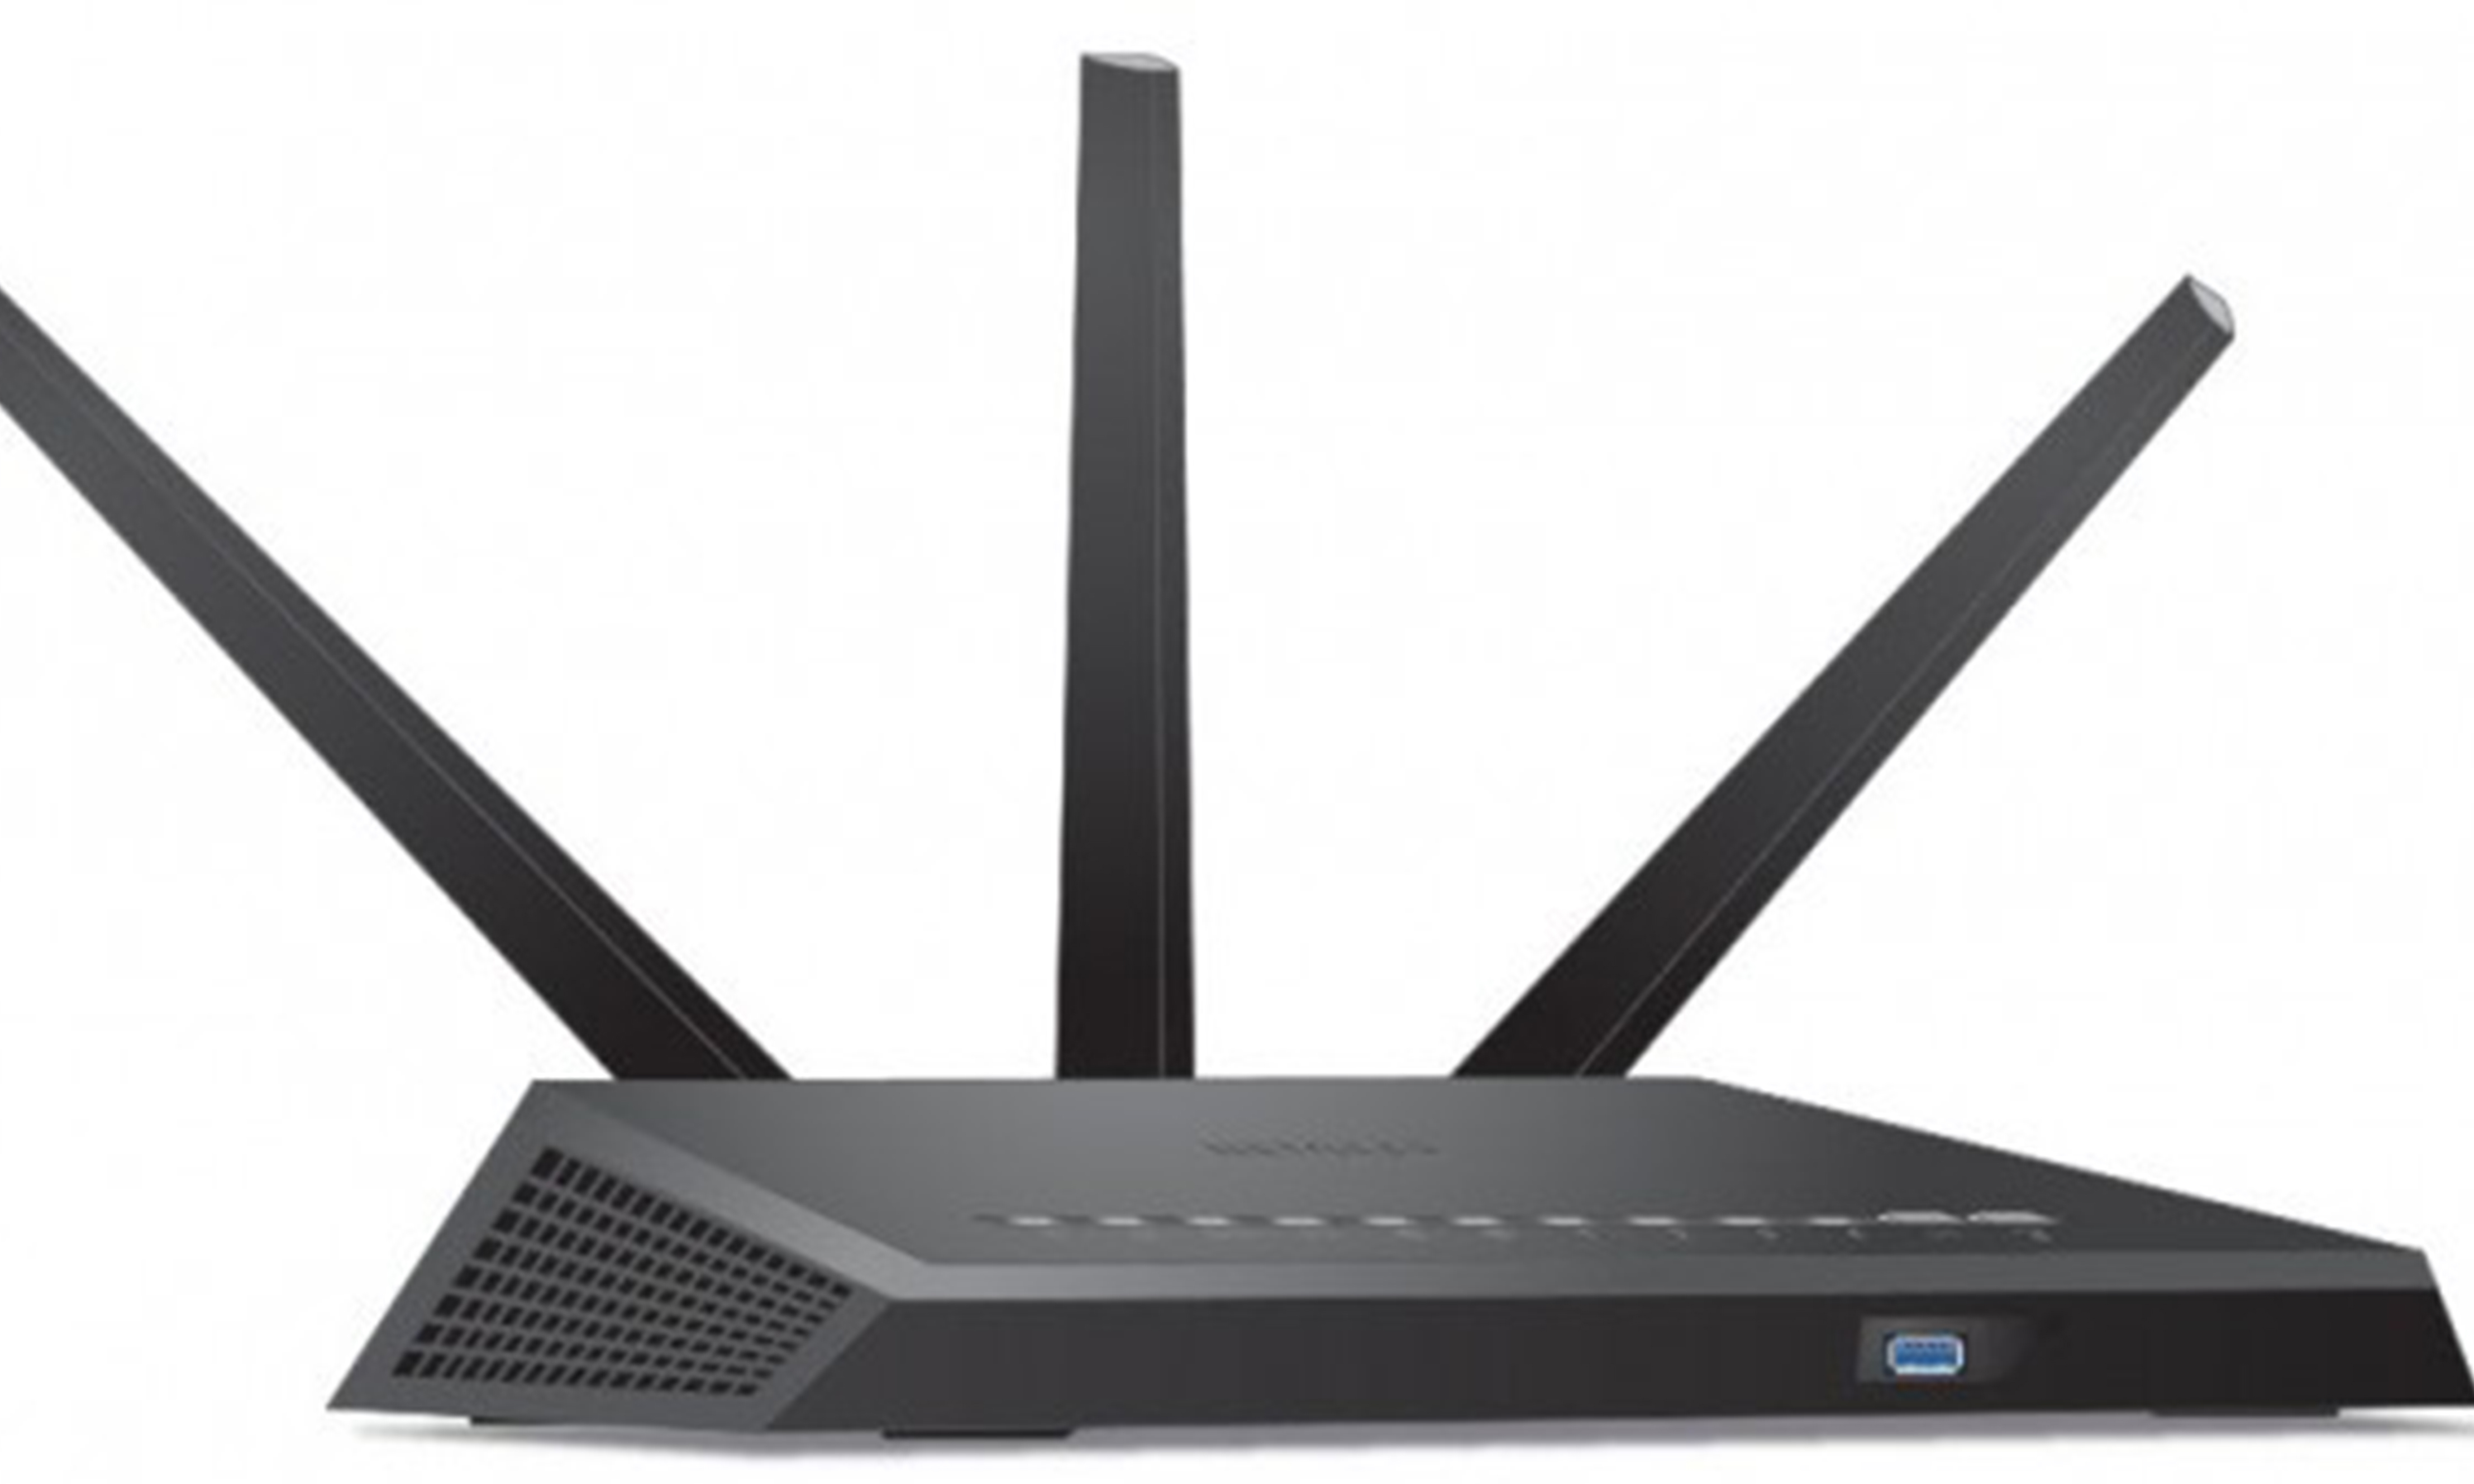 The Nighthawk R7000 by NETGEAR Review – The Double Check